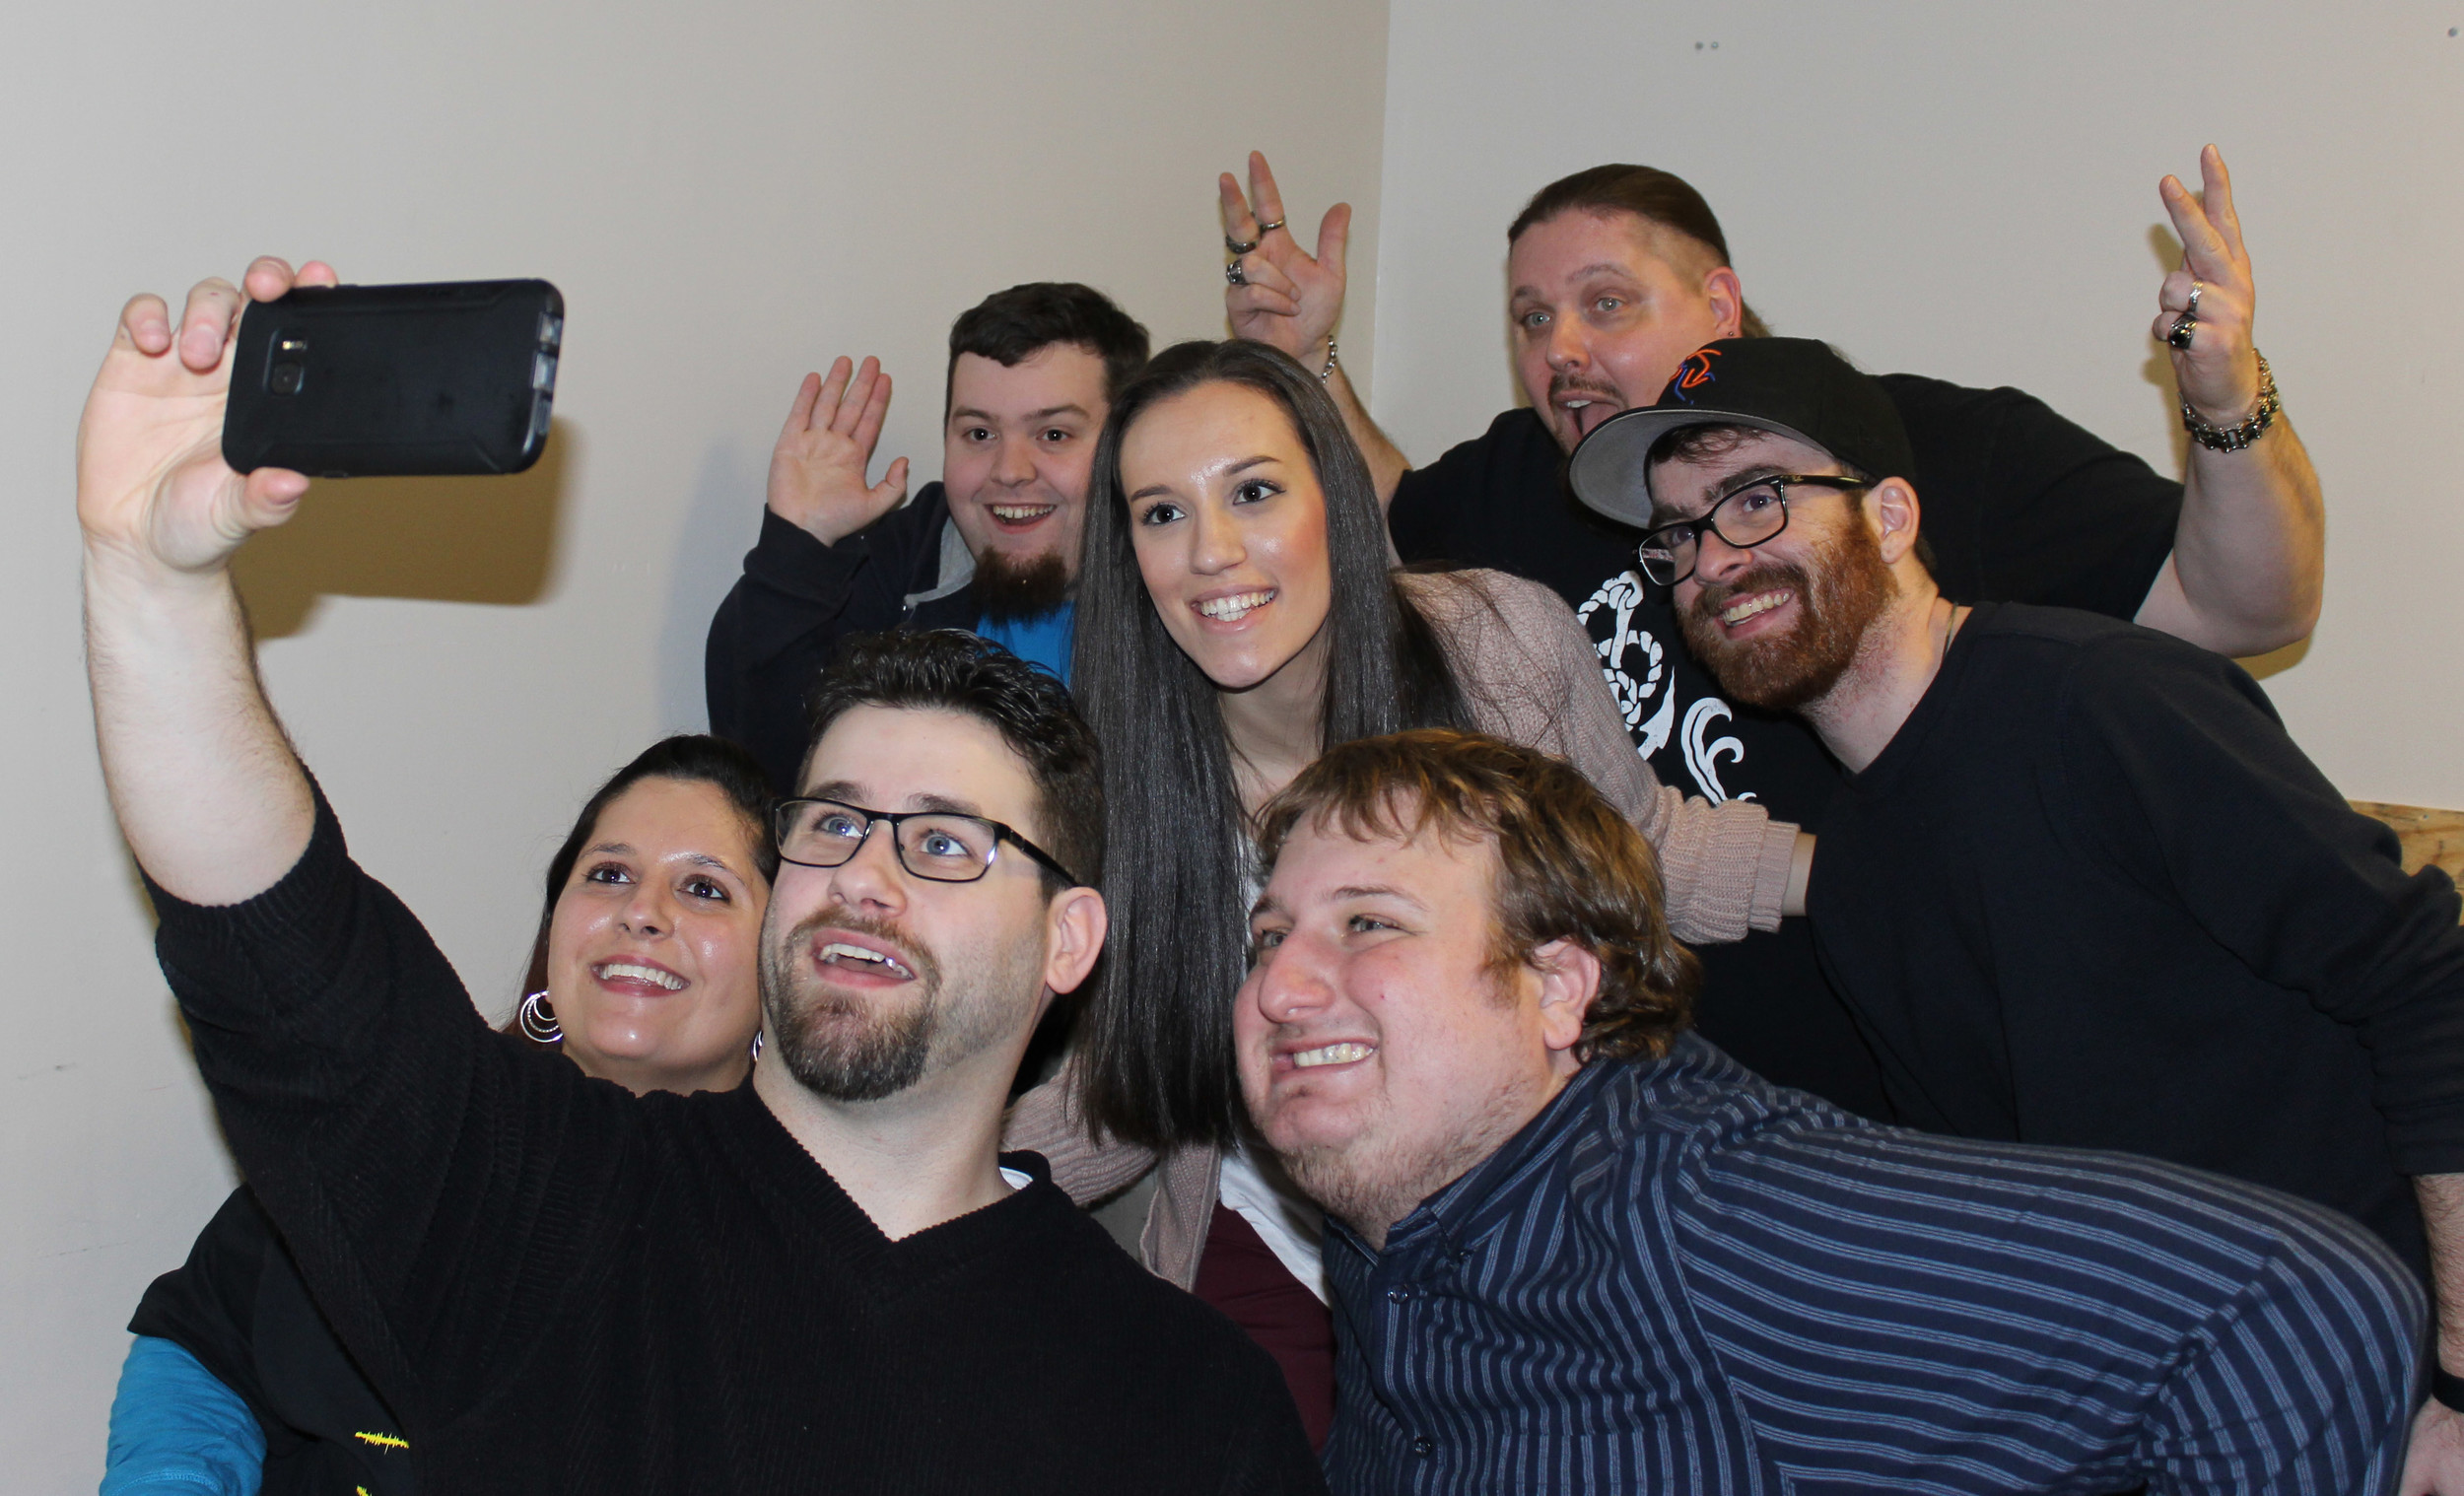 Grindhouse Radio cast members and friends, posing for a group selfie, included Jenna Leonardi, far left; co-host Stephen Zambito, 25, of Stony Brook; Kevin Dempsey, 26, of Bay Shore; co-host Kim Adragna, 22, of Merrick; Steve Eisenberg; co-host William Kucmierowski, 42, of Levittown; and Tom Greer, of West Babylon.